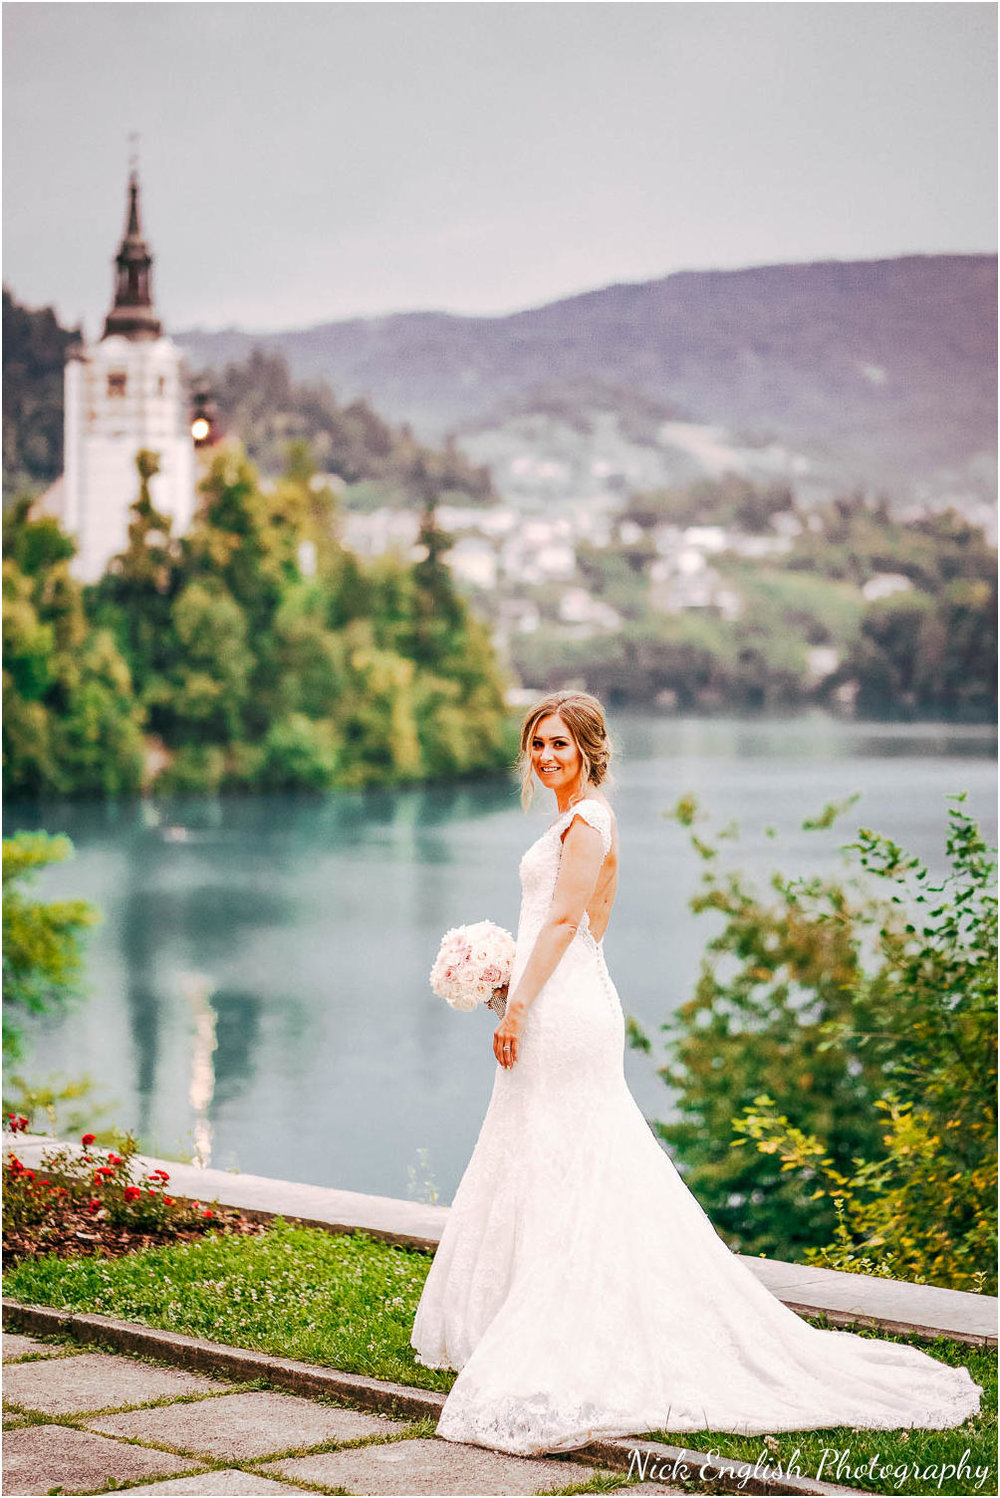 Destination_Wedding_Photographer_Slovenia_Nick_English_Photography-91.jpg